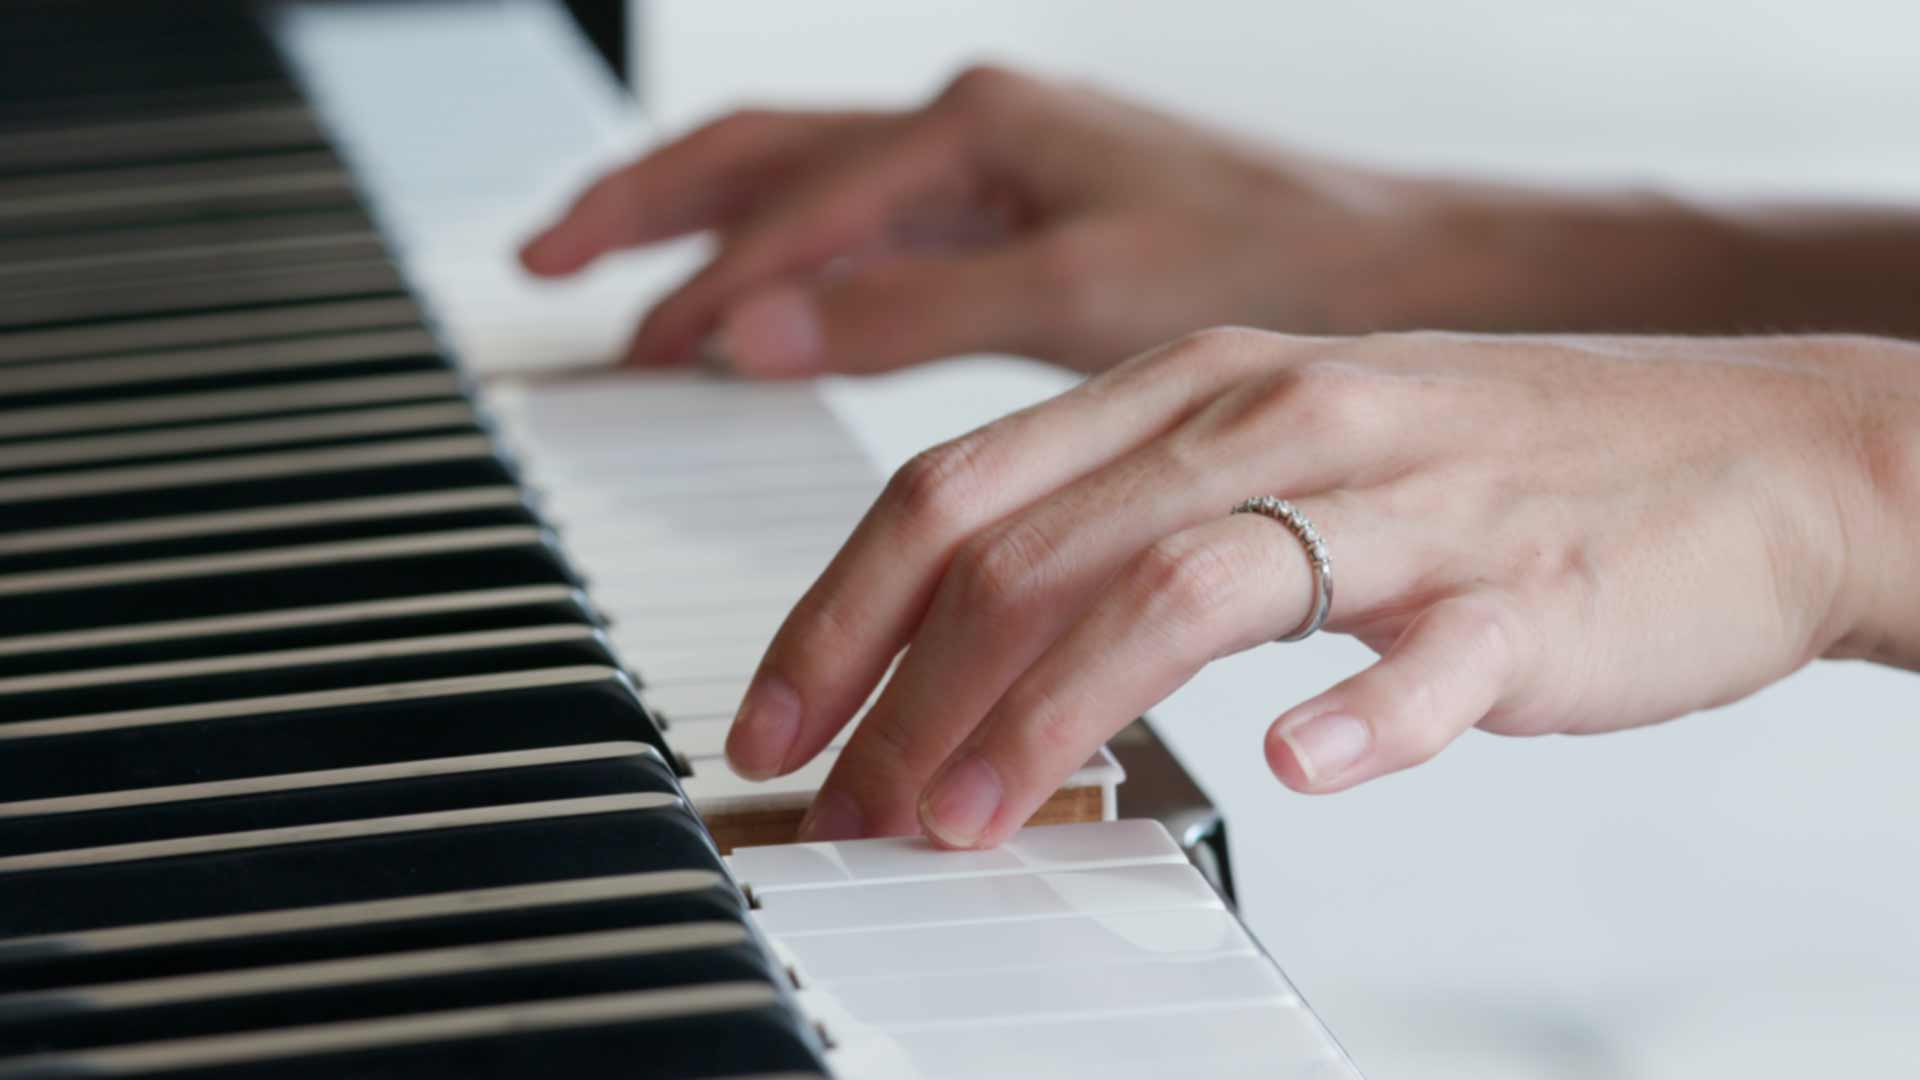 womans hand playing a piano background